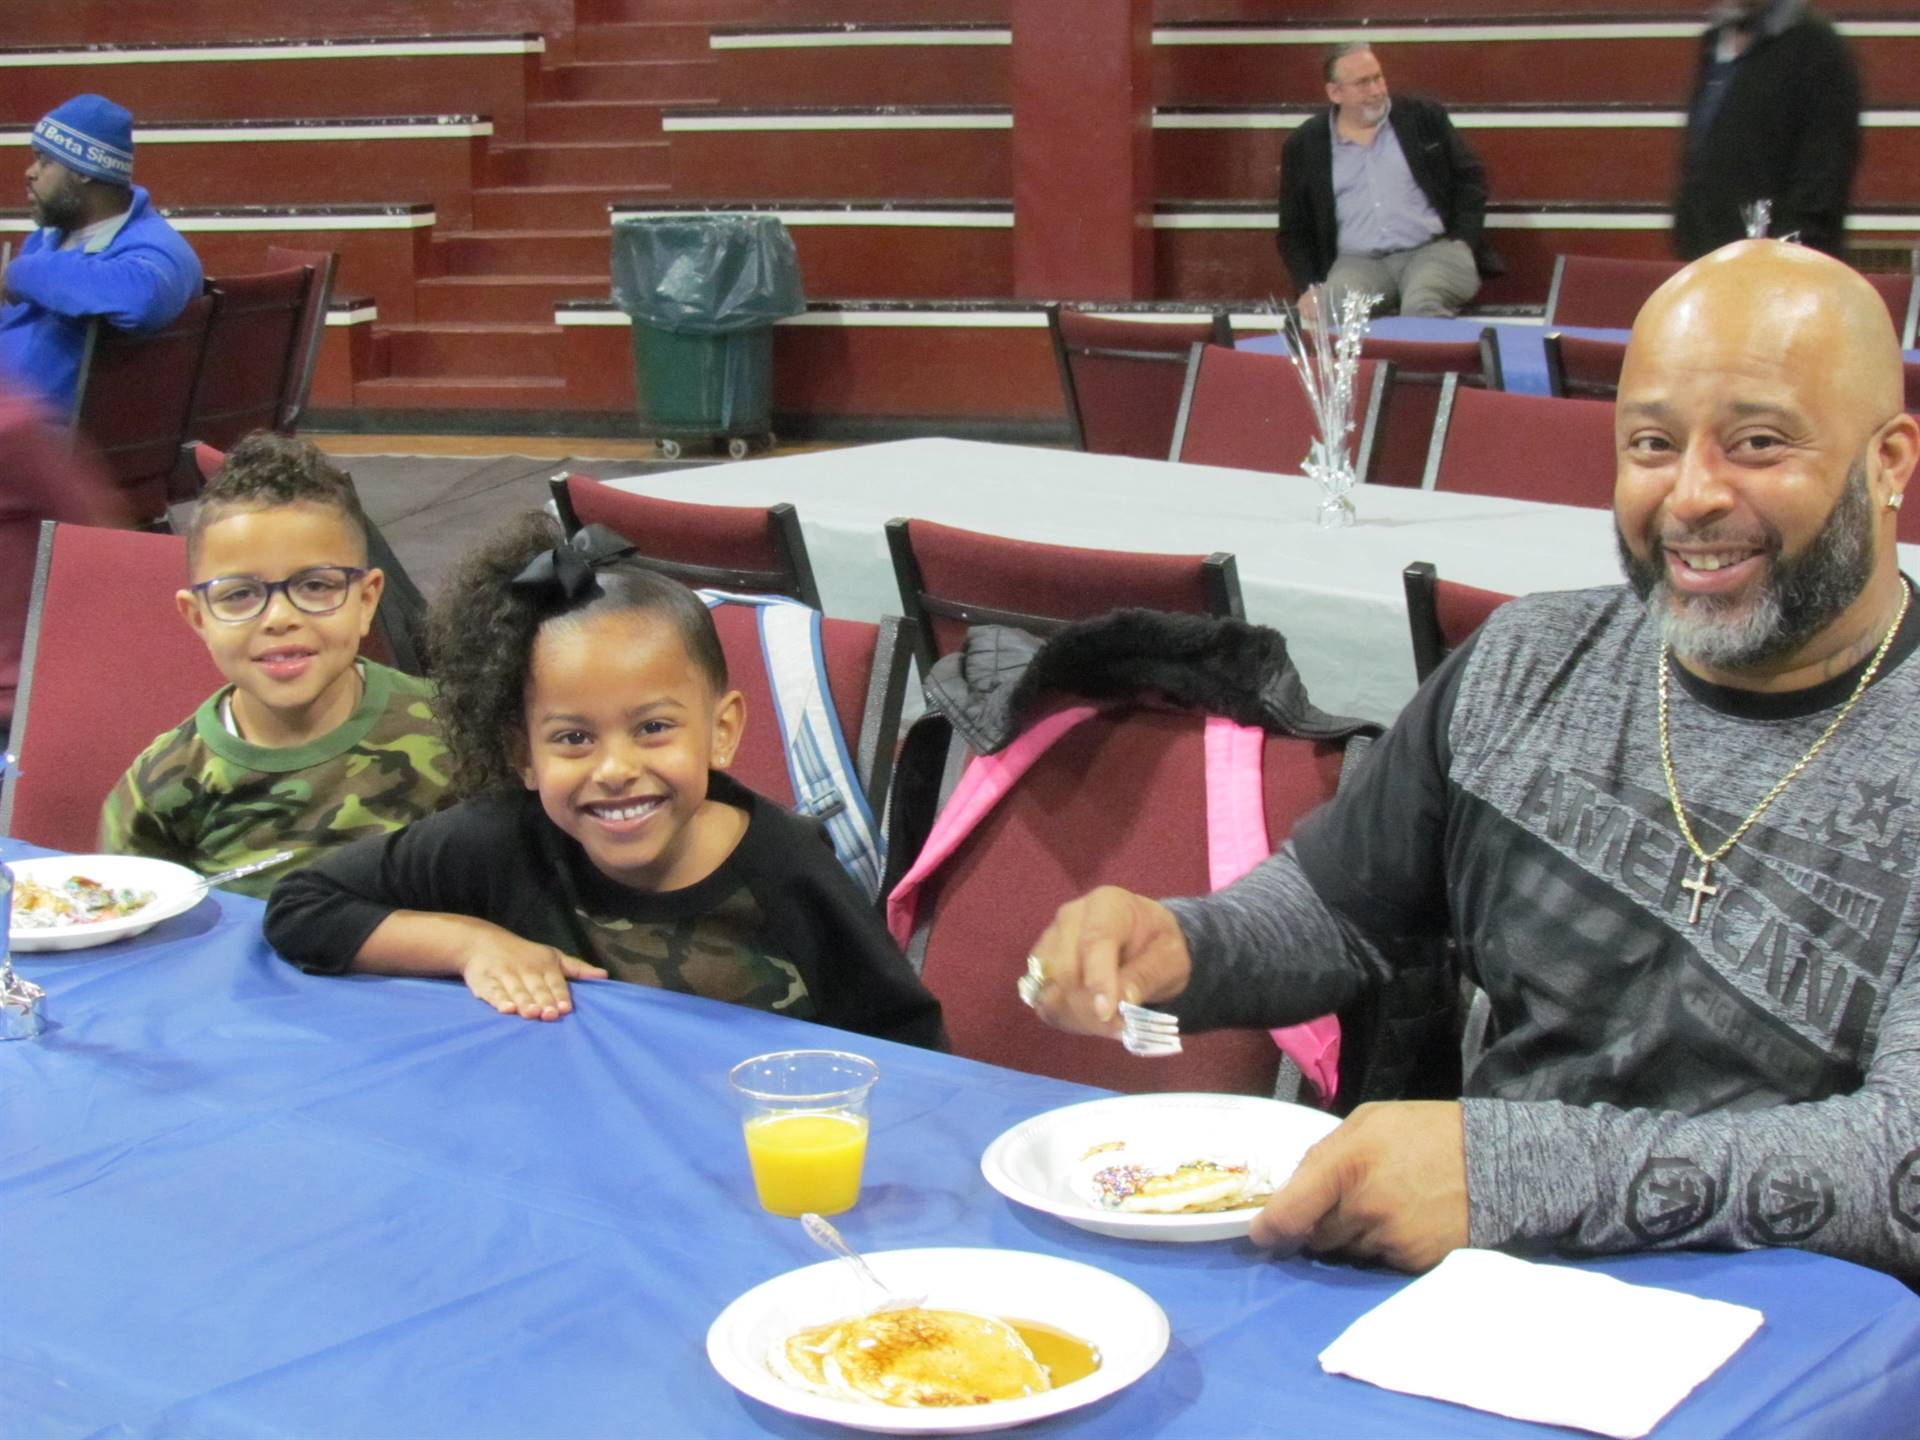 dad and 2 kids at table